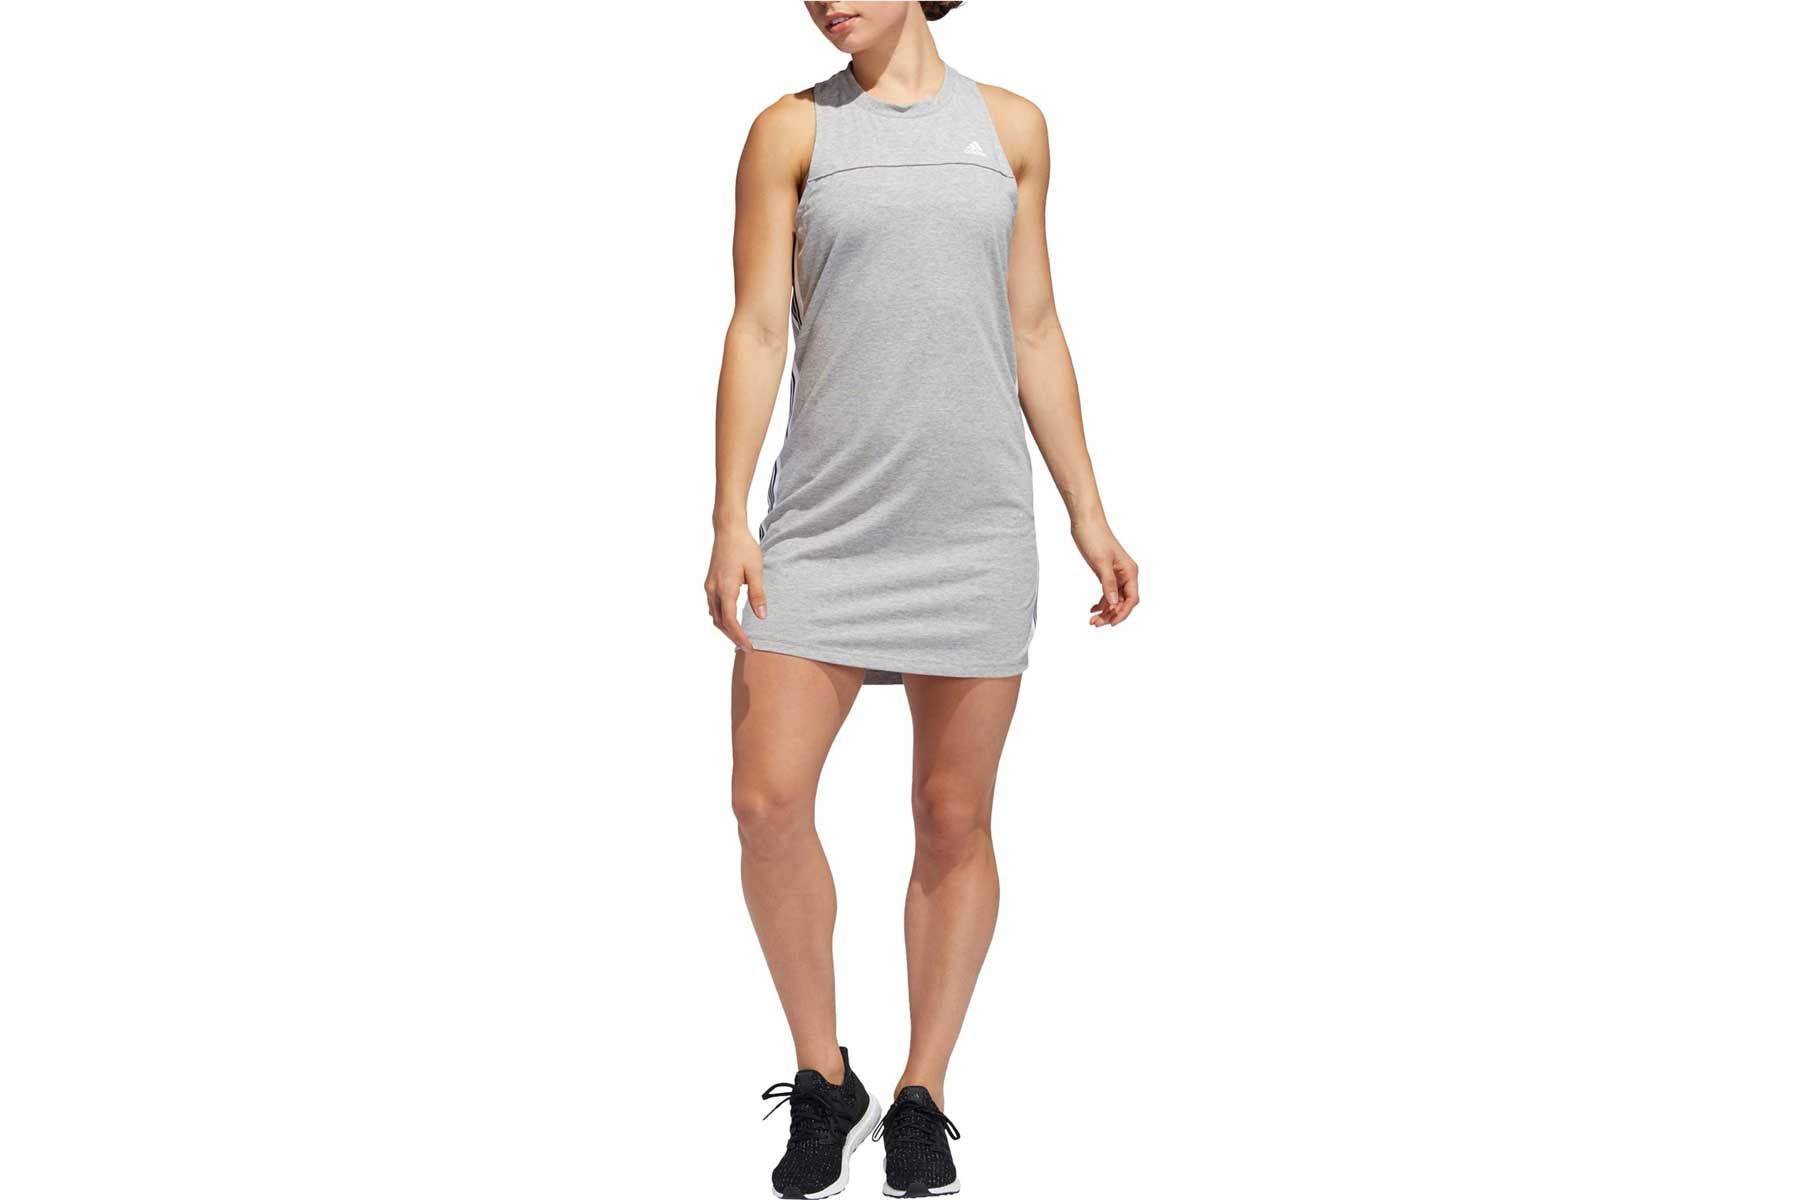 Adidas Women's Changeover Sleeveles Dress